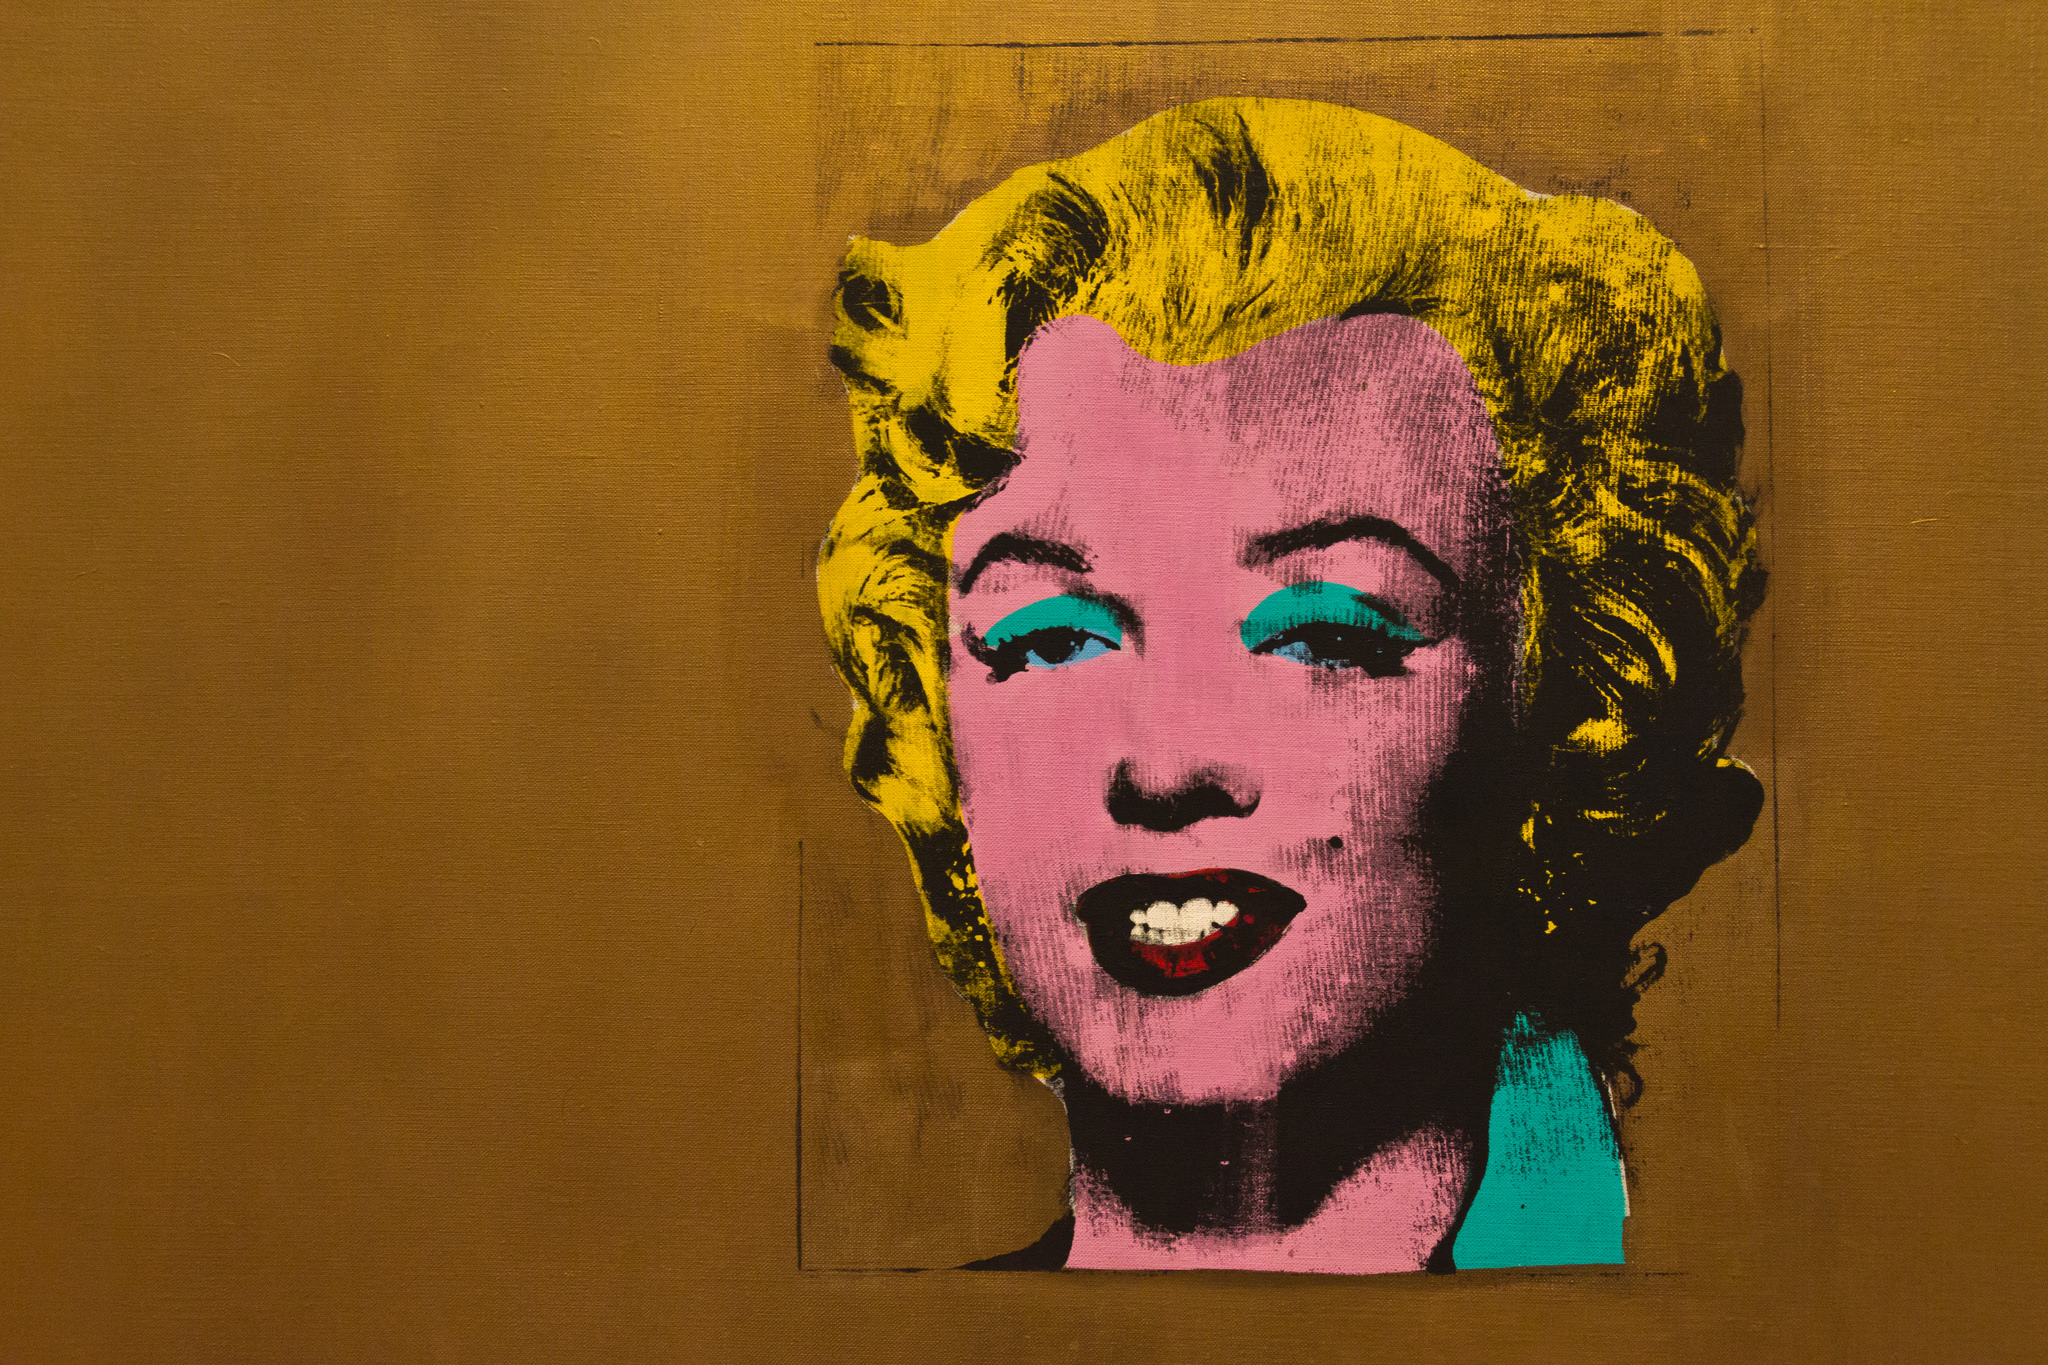 Marilyn Pop Art Andy Warhol Andy Warhol And His Artistic Influence